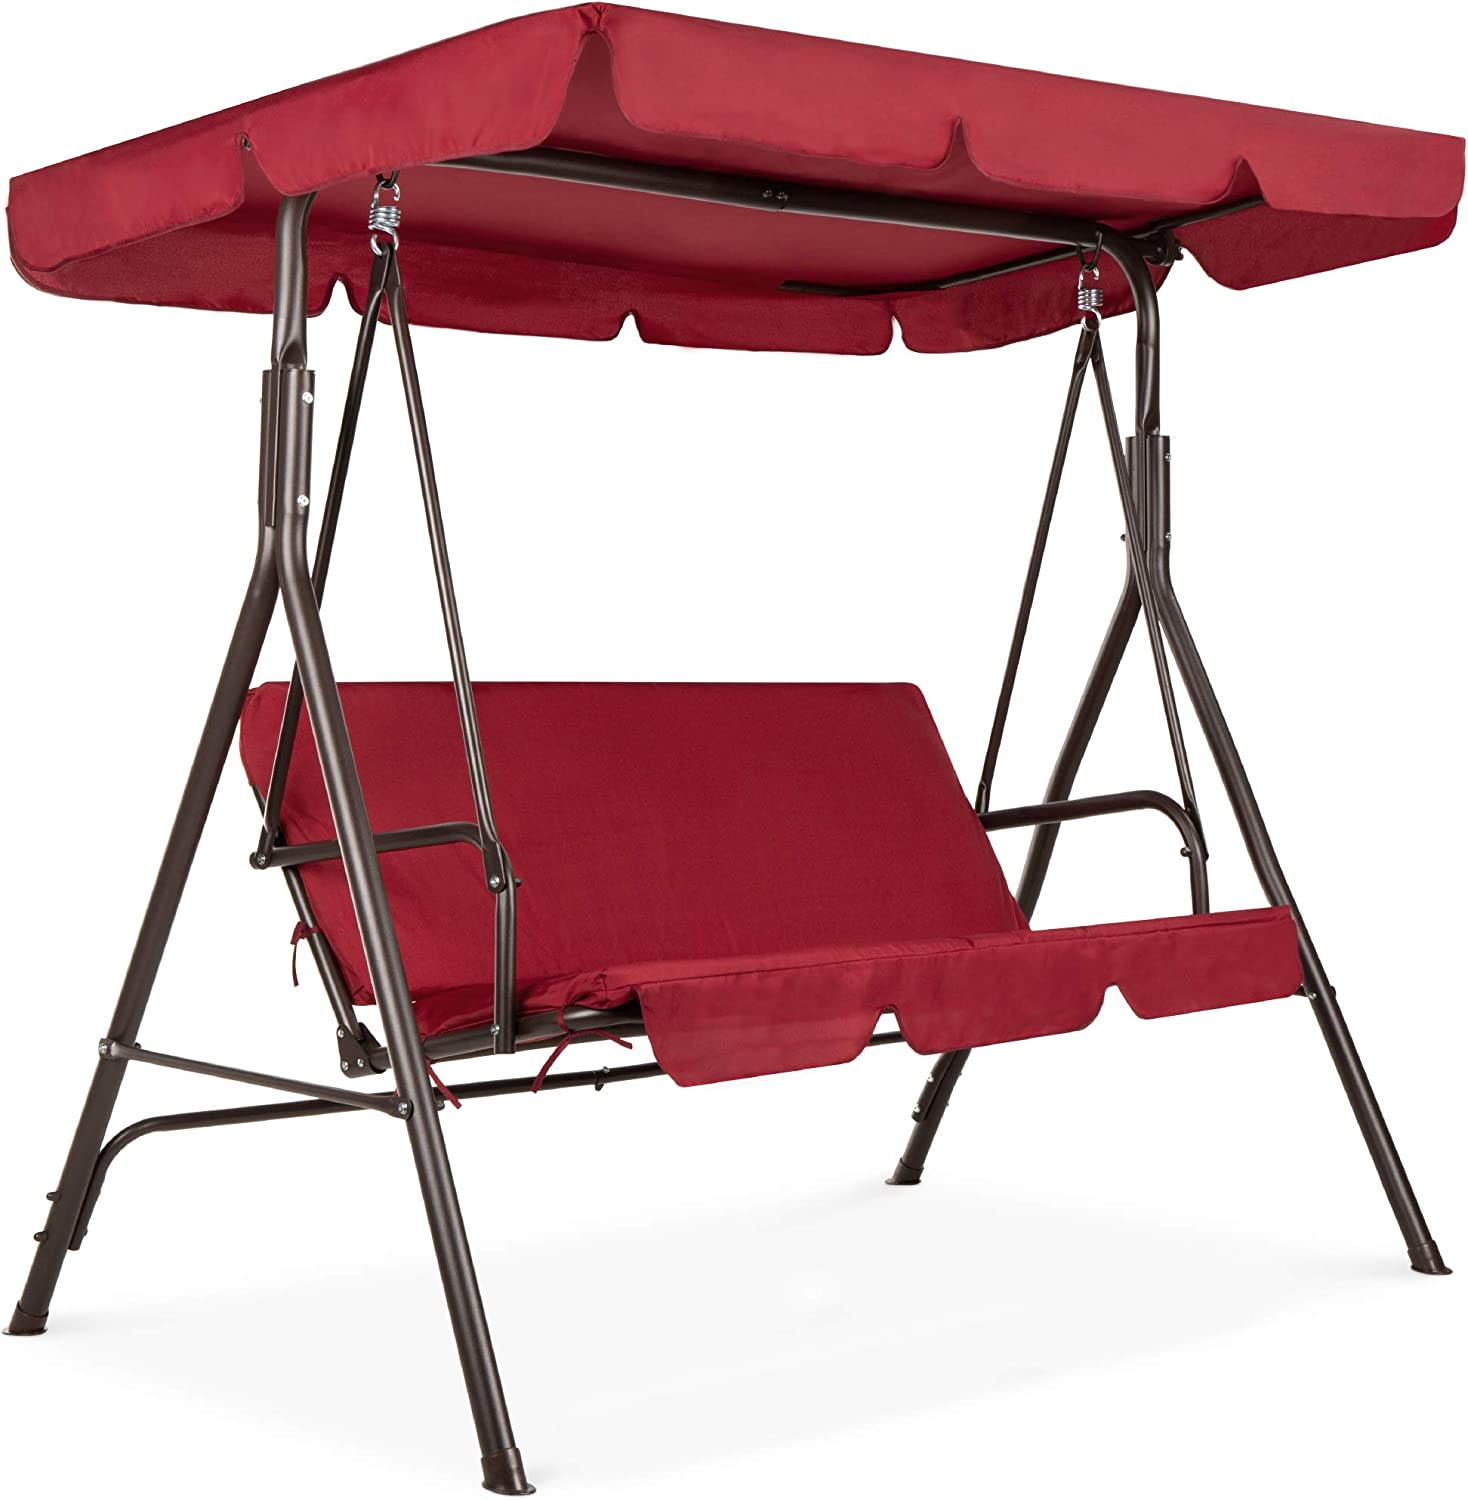 best choice products 2 person outdoor large convertible canopy hanging swing glider lounge chair w adjustable shade removable cushions burgundy